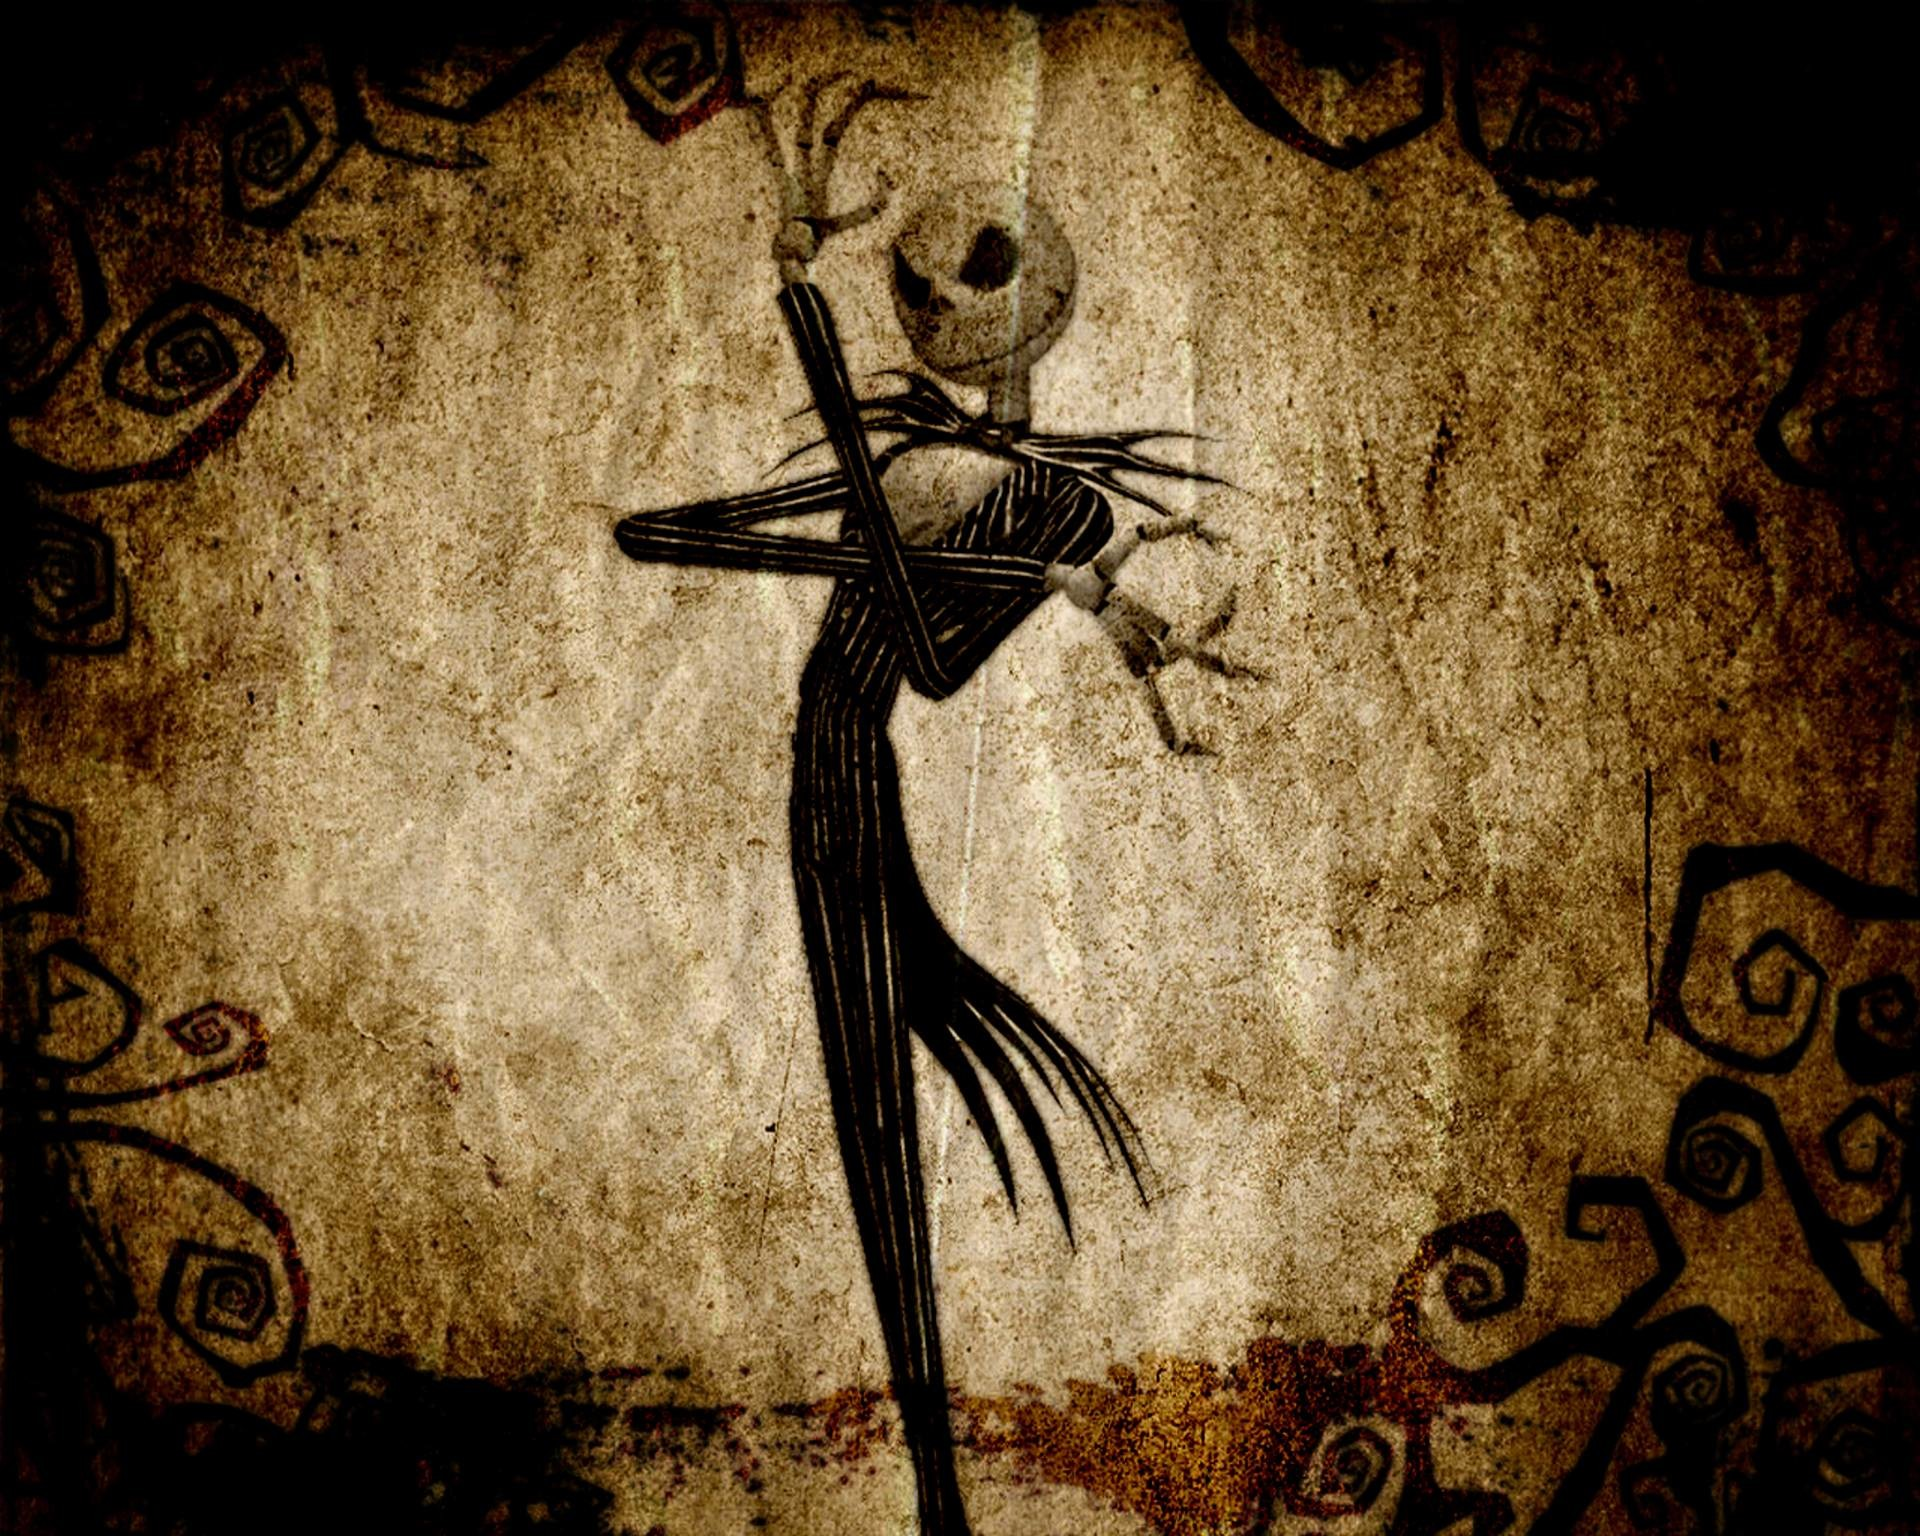 Nightmare Before Christmas Hd Wallpaper.The Nightmare Before Christmas Wallpapers 74 Background